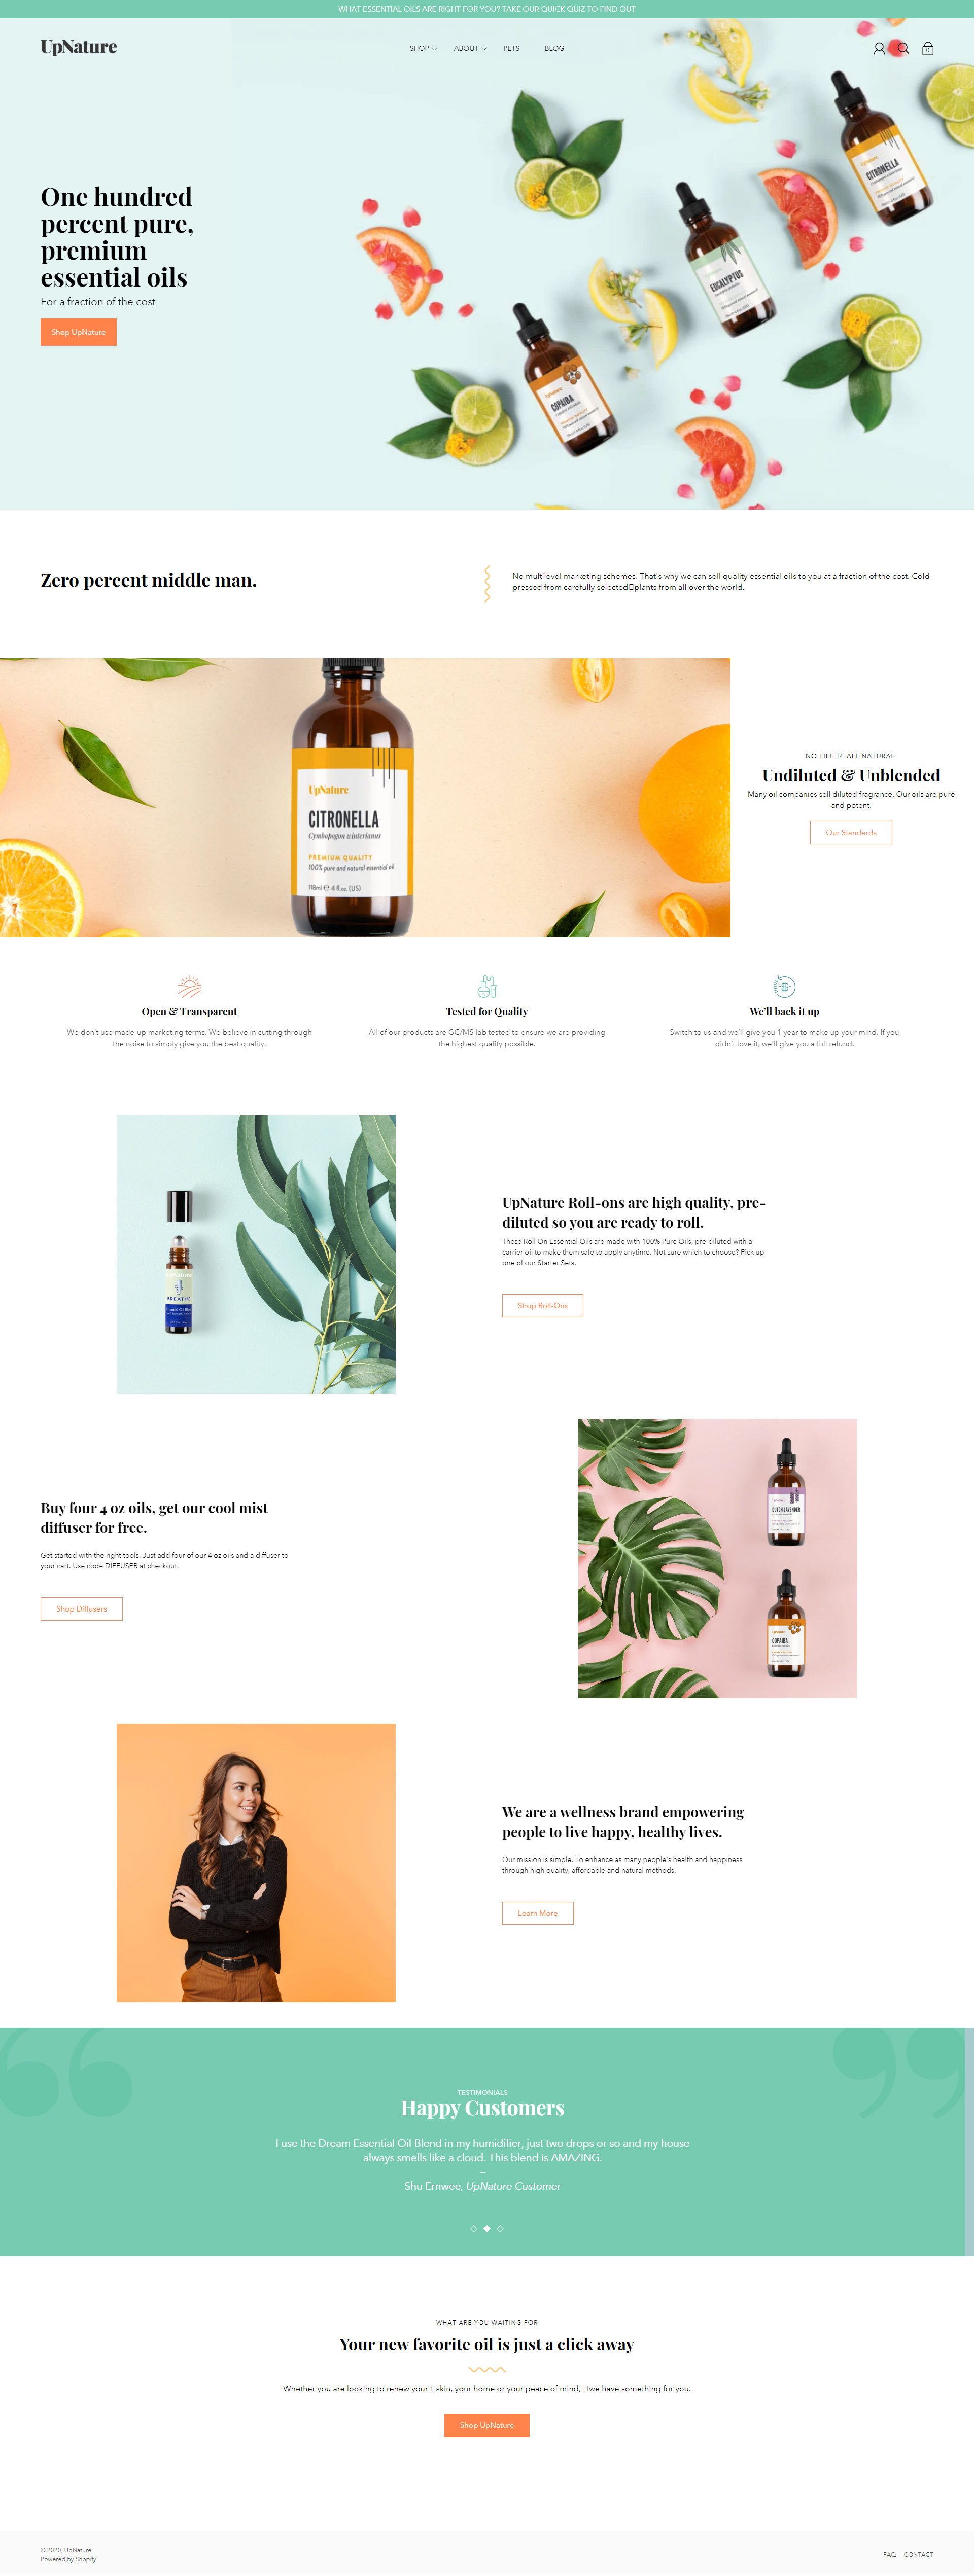 Previous Natural Store Website Design Example